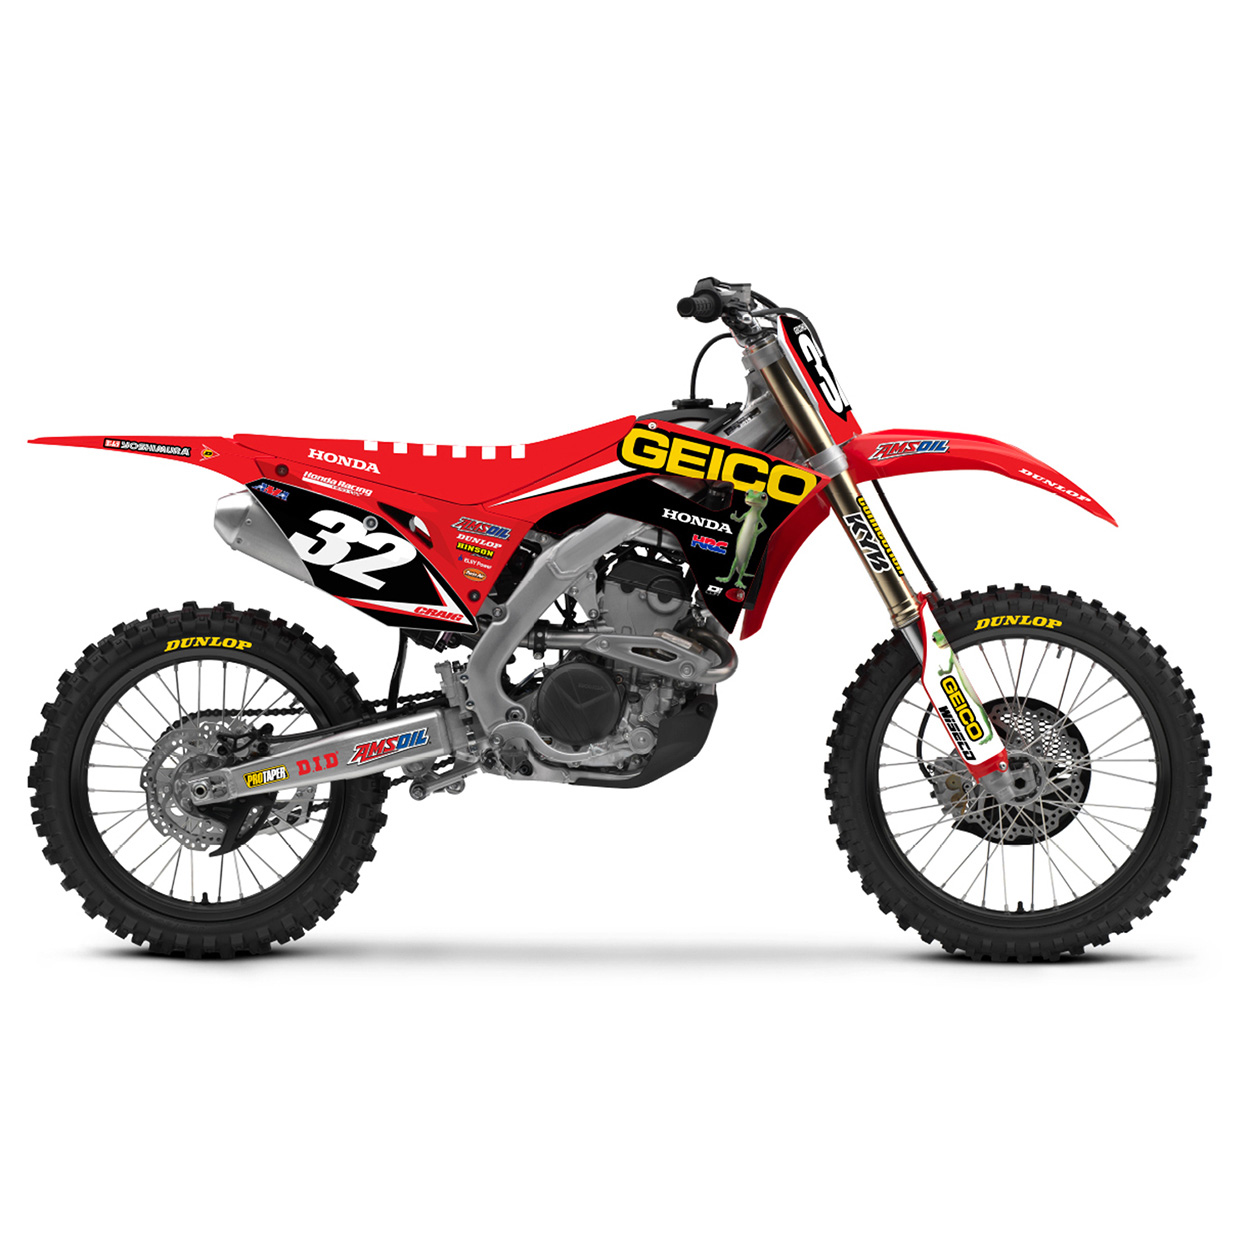 D'cor 2018 Team Geico Honda Full Graphic Kit Honda CR125 CR250 CRF250 CRF450 Stickerset Dekor-Kit  Kit Déco Complet